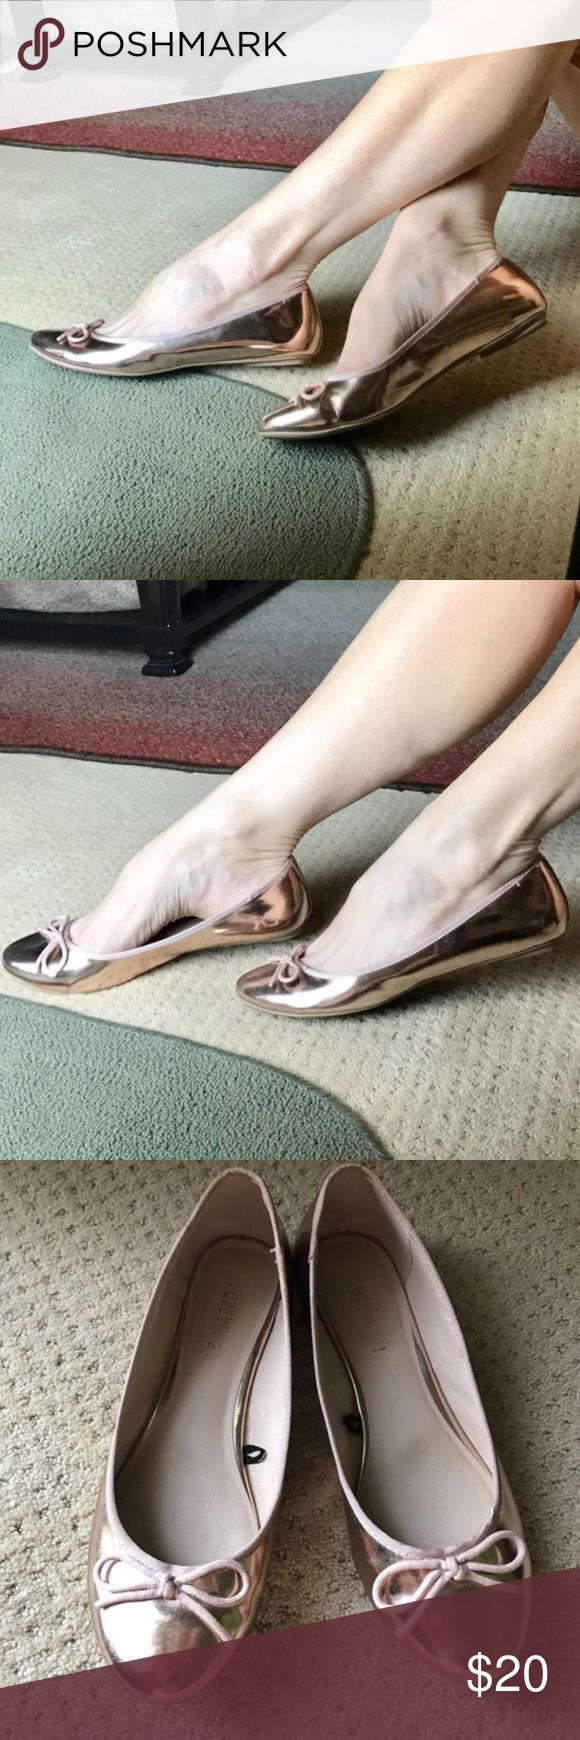 ROSE GOLD FLATS ballet shoes mirrored SZ 8.5/9 Lovely rose gold ballet flats in a mirrored patent, grosgrain trim, and bow toe. Marked as a 9, fits a 8.5 better. So pretty!..the color of the season!  F22 Forever 21 Shoes Flats & Loafers